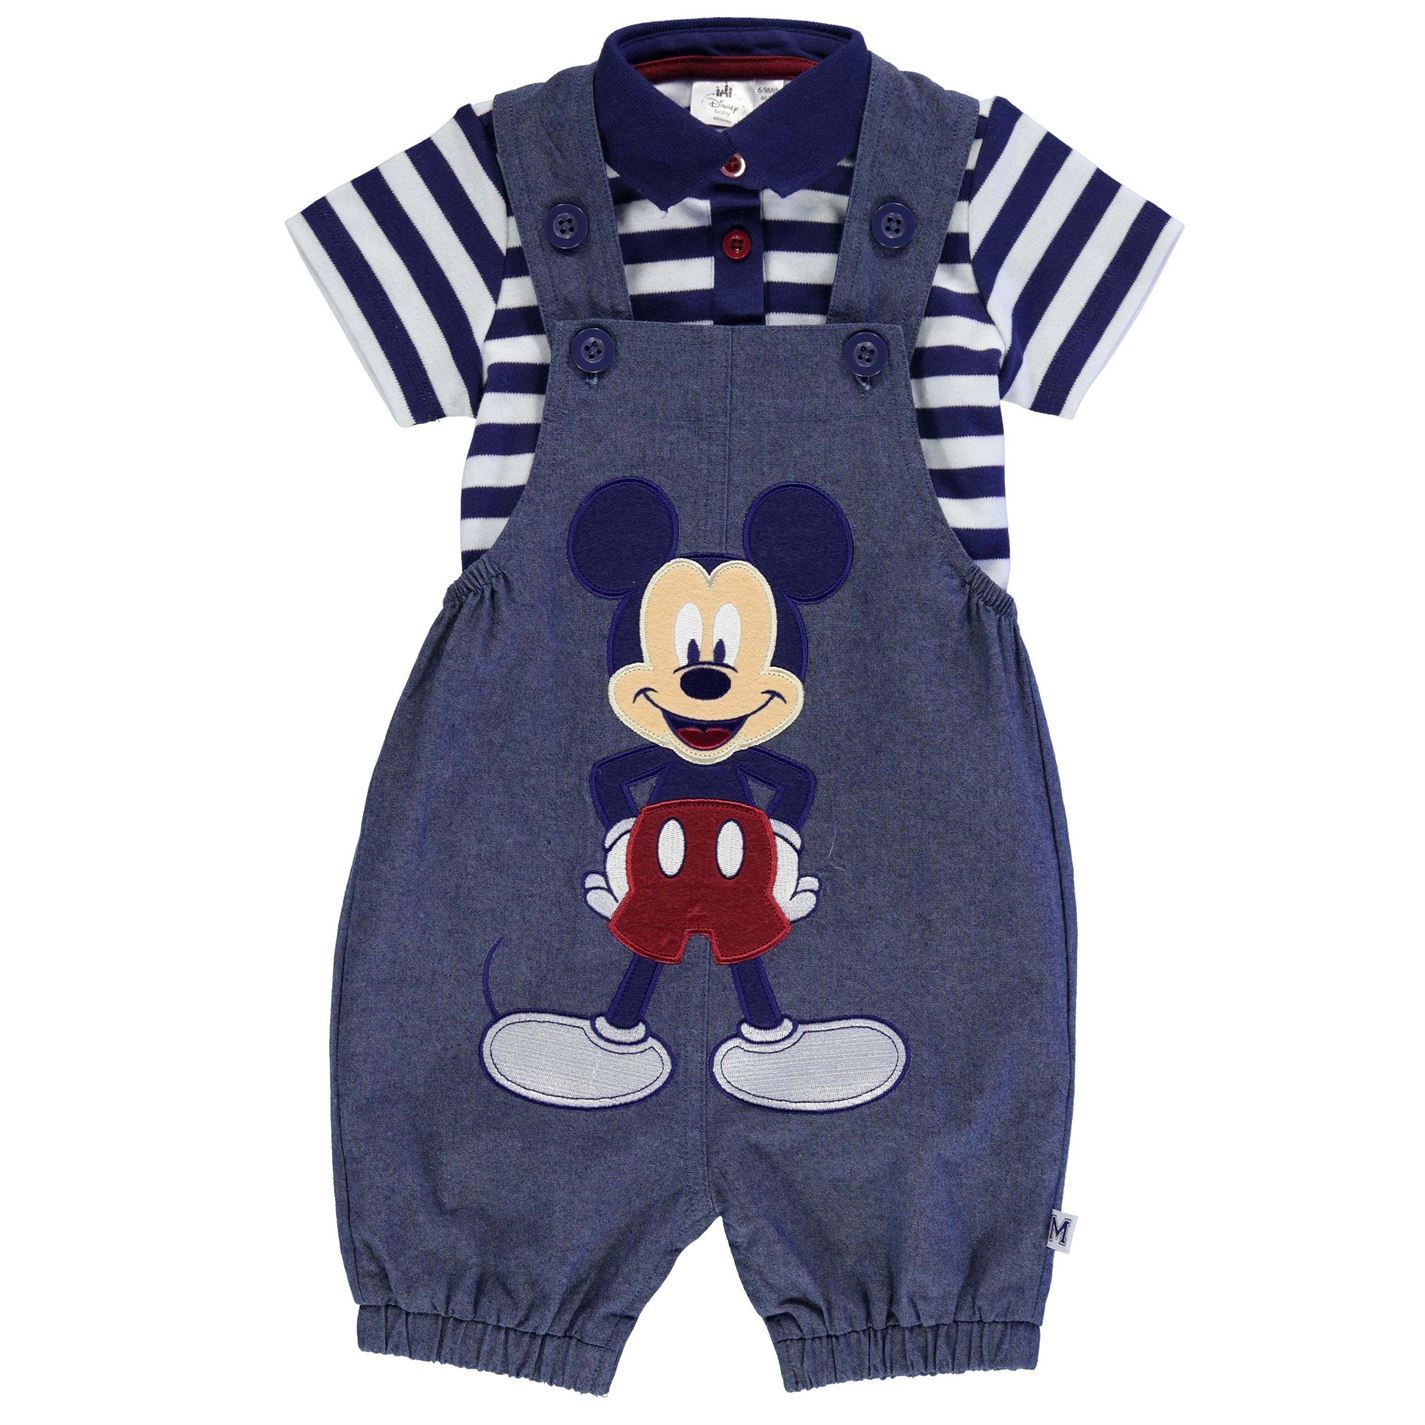 Disney Mickey Mouse Two Piece Dungaree Set Babies Blue White Clothes